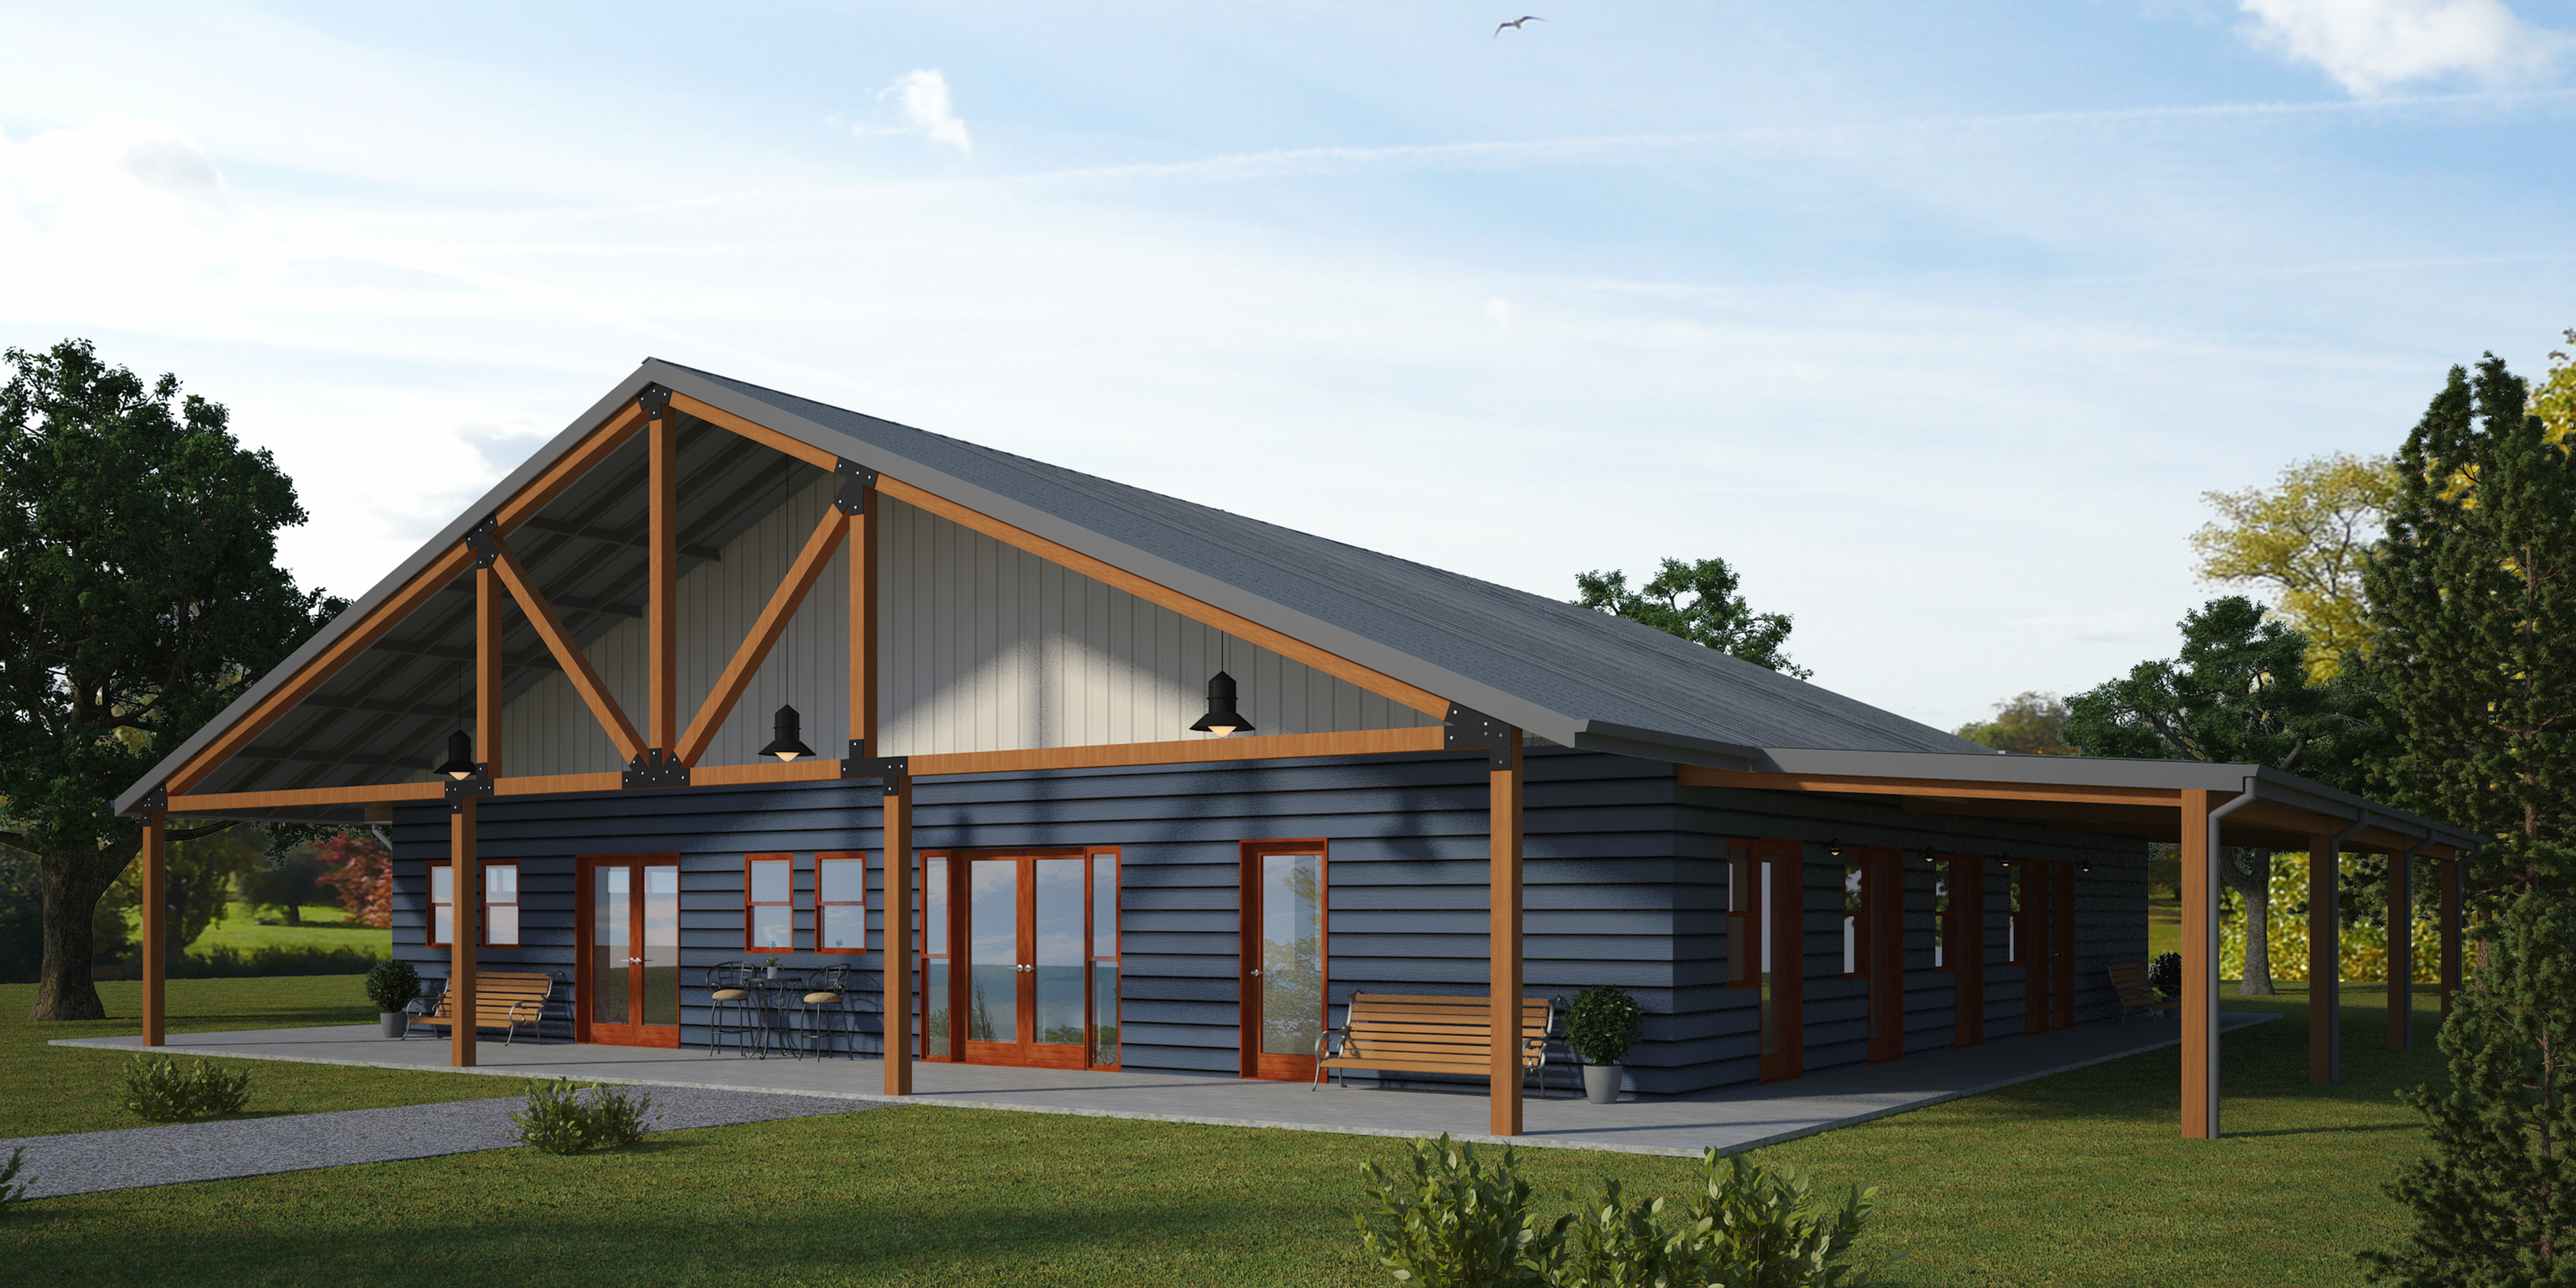 New Dog Cattery Artists Impressions Ph 0407763976